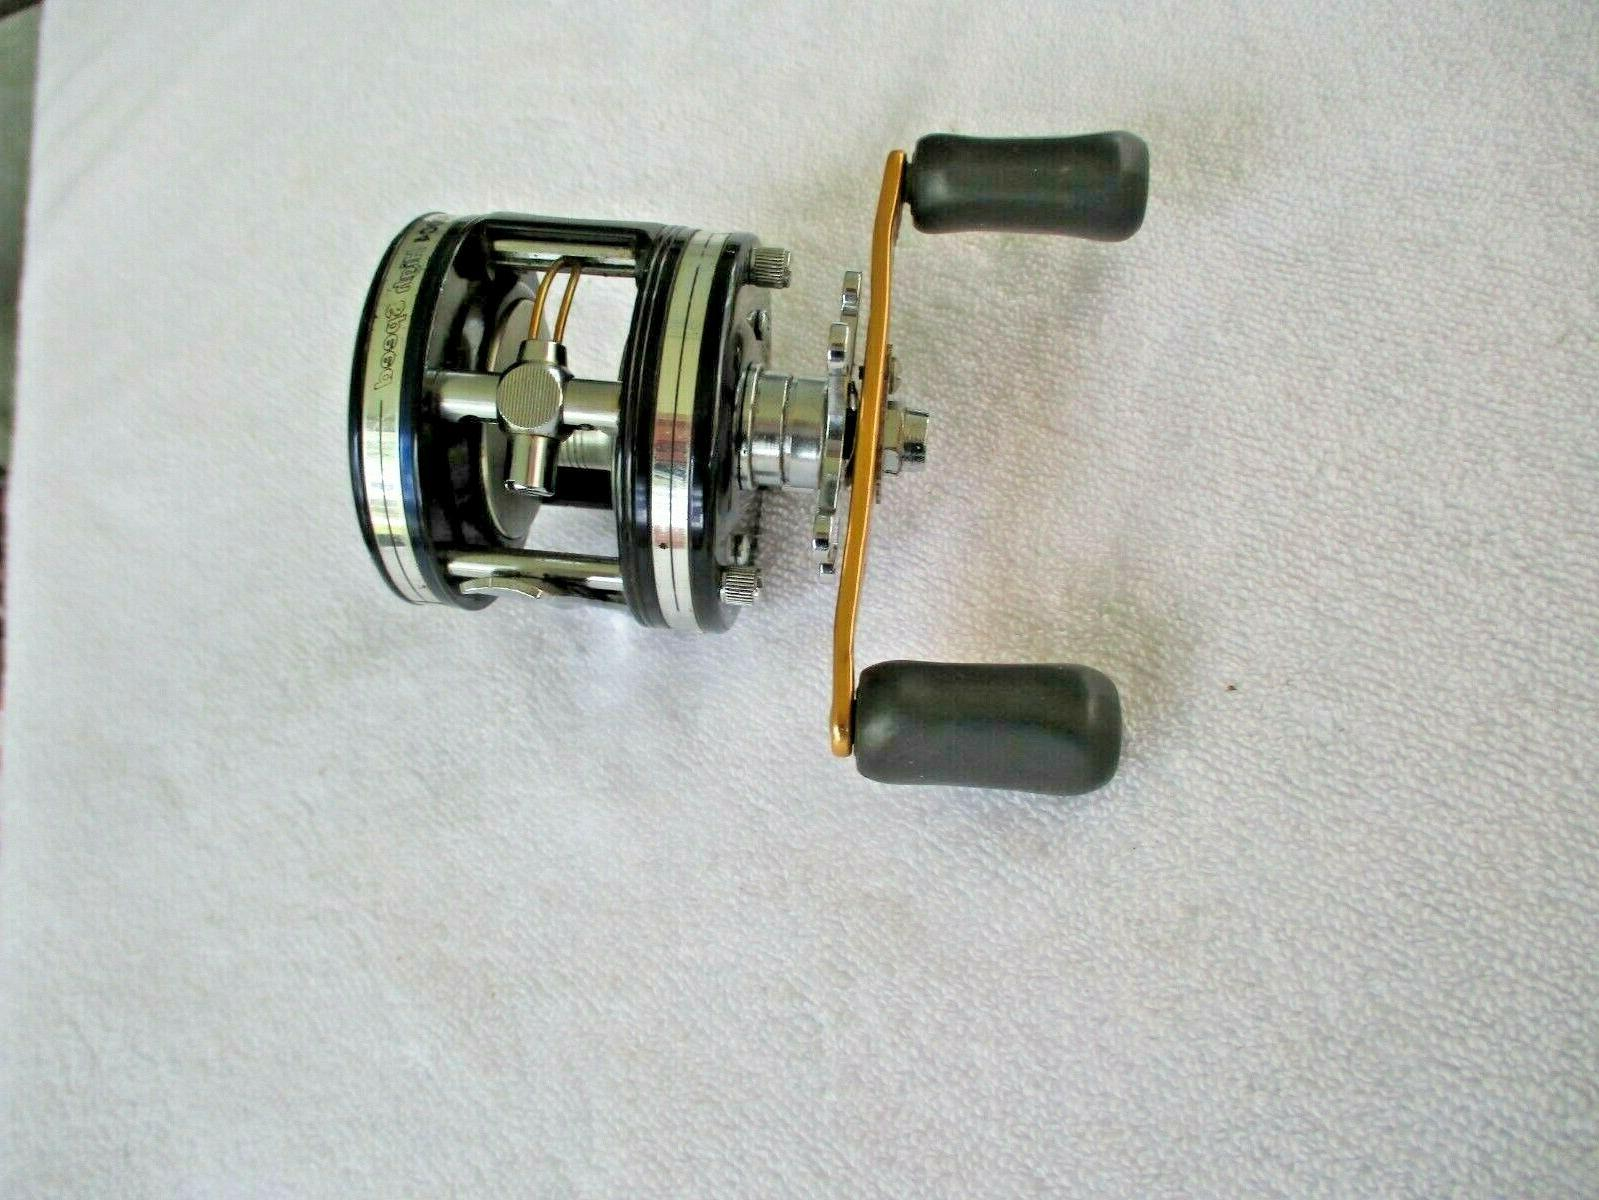 Abu Garcia The Original Disassembled and lubed